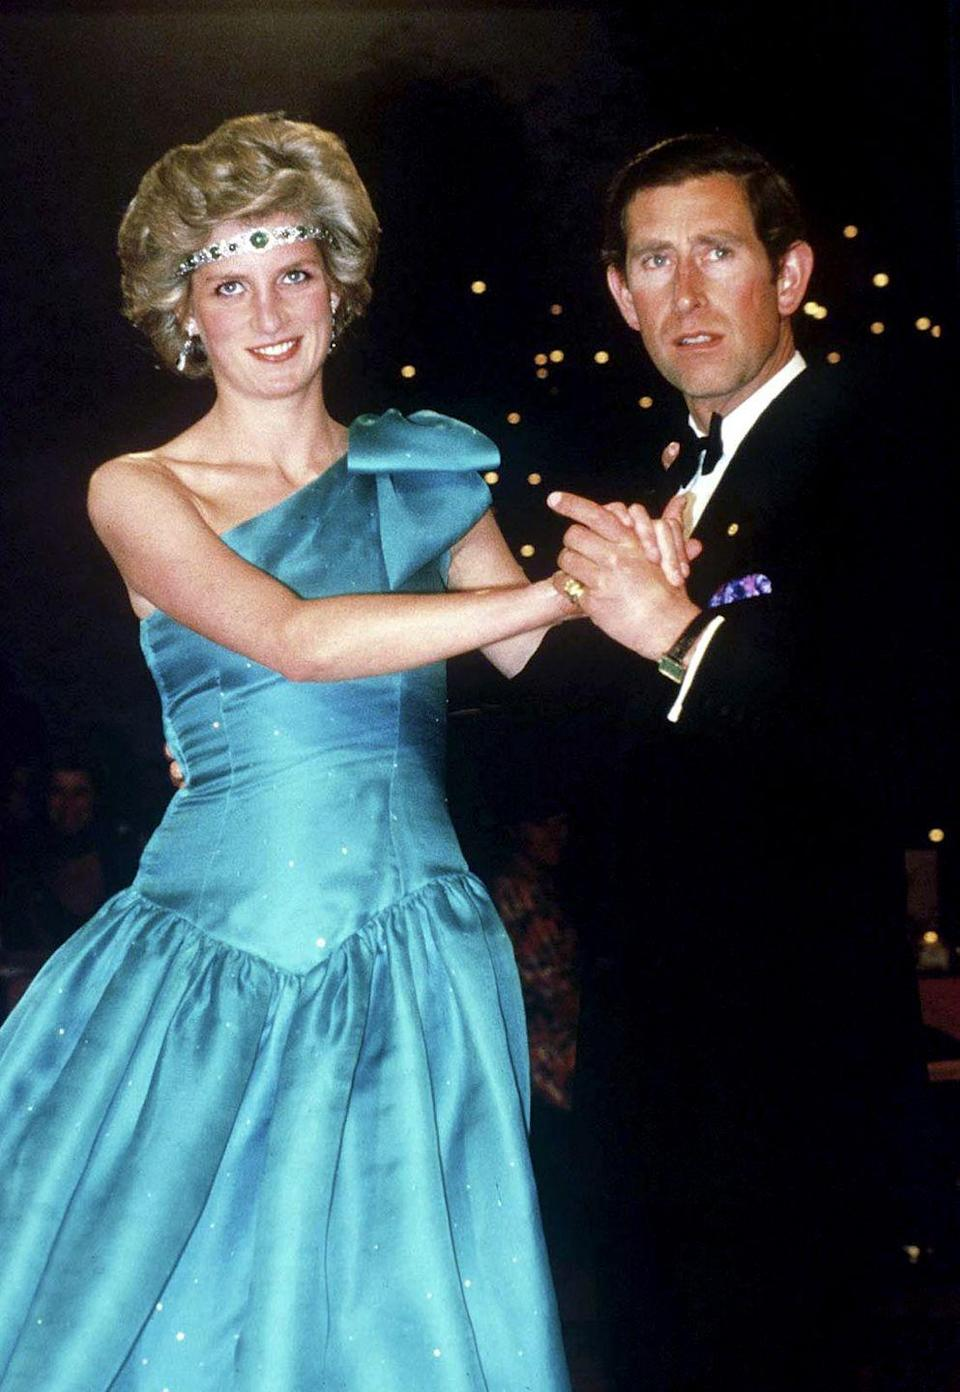 <p>Princess Diana danced with Prince Charles in Melbourne, during their official tour of Australia. Here, Diana went for a more unconventional tiara look: she took a diamond and emerald choker necklace, which had been a wedding gift from the Queen, and turned it into a headpiece. She paired the tiara-of-sorts with a one-shouldered turquoise gown, designed by the Emmanuels. </p>